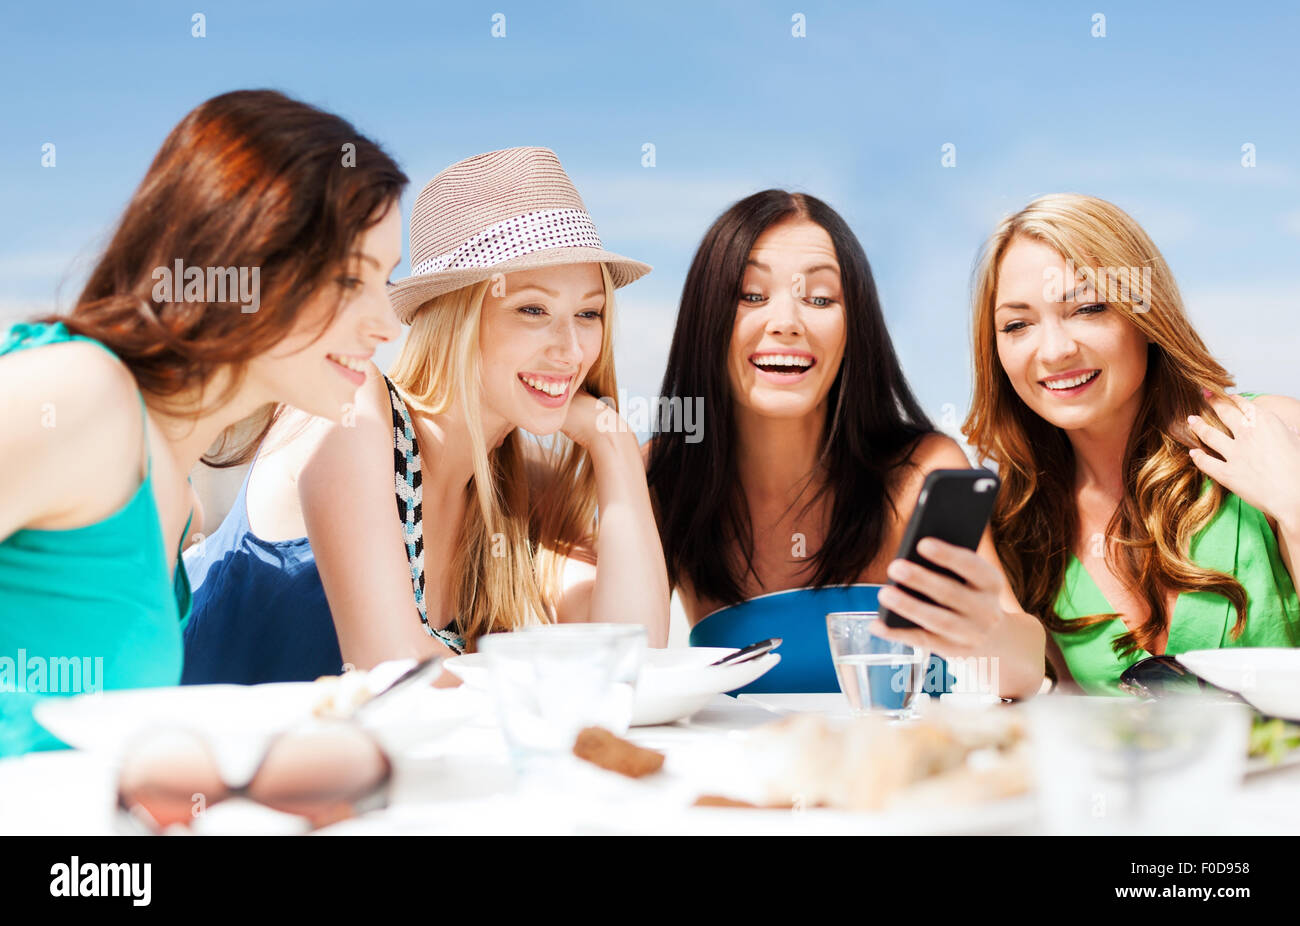 Girls Looking At Smartphone In Cafe On The Beach Stock Photo